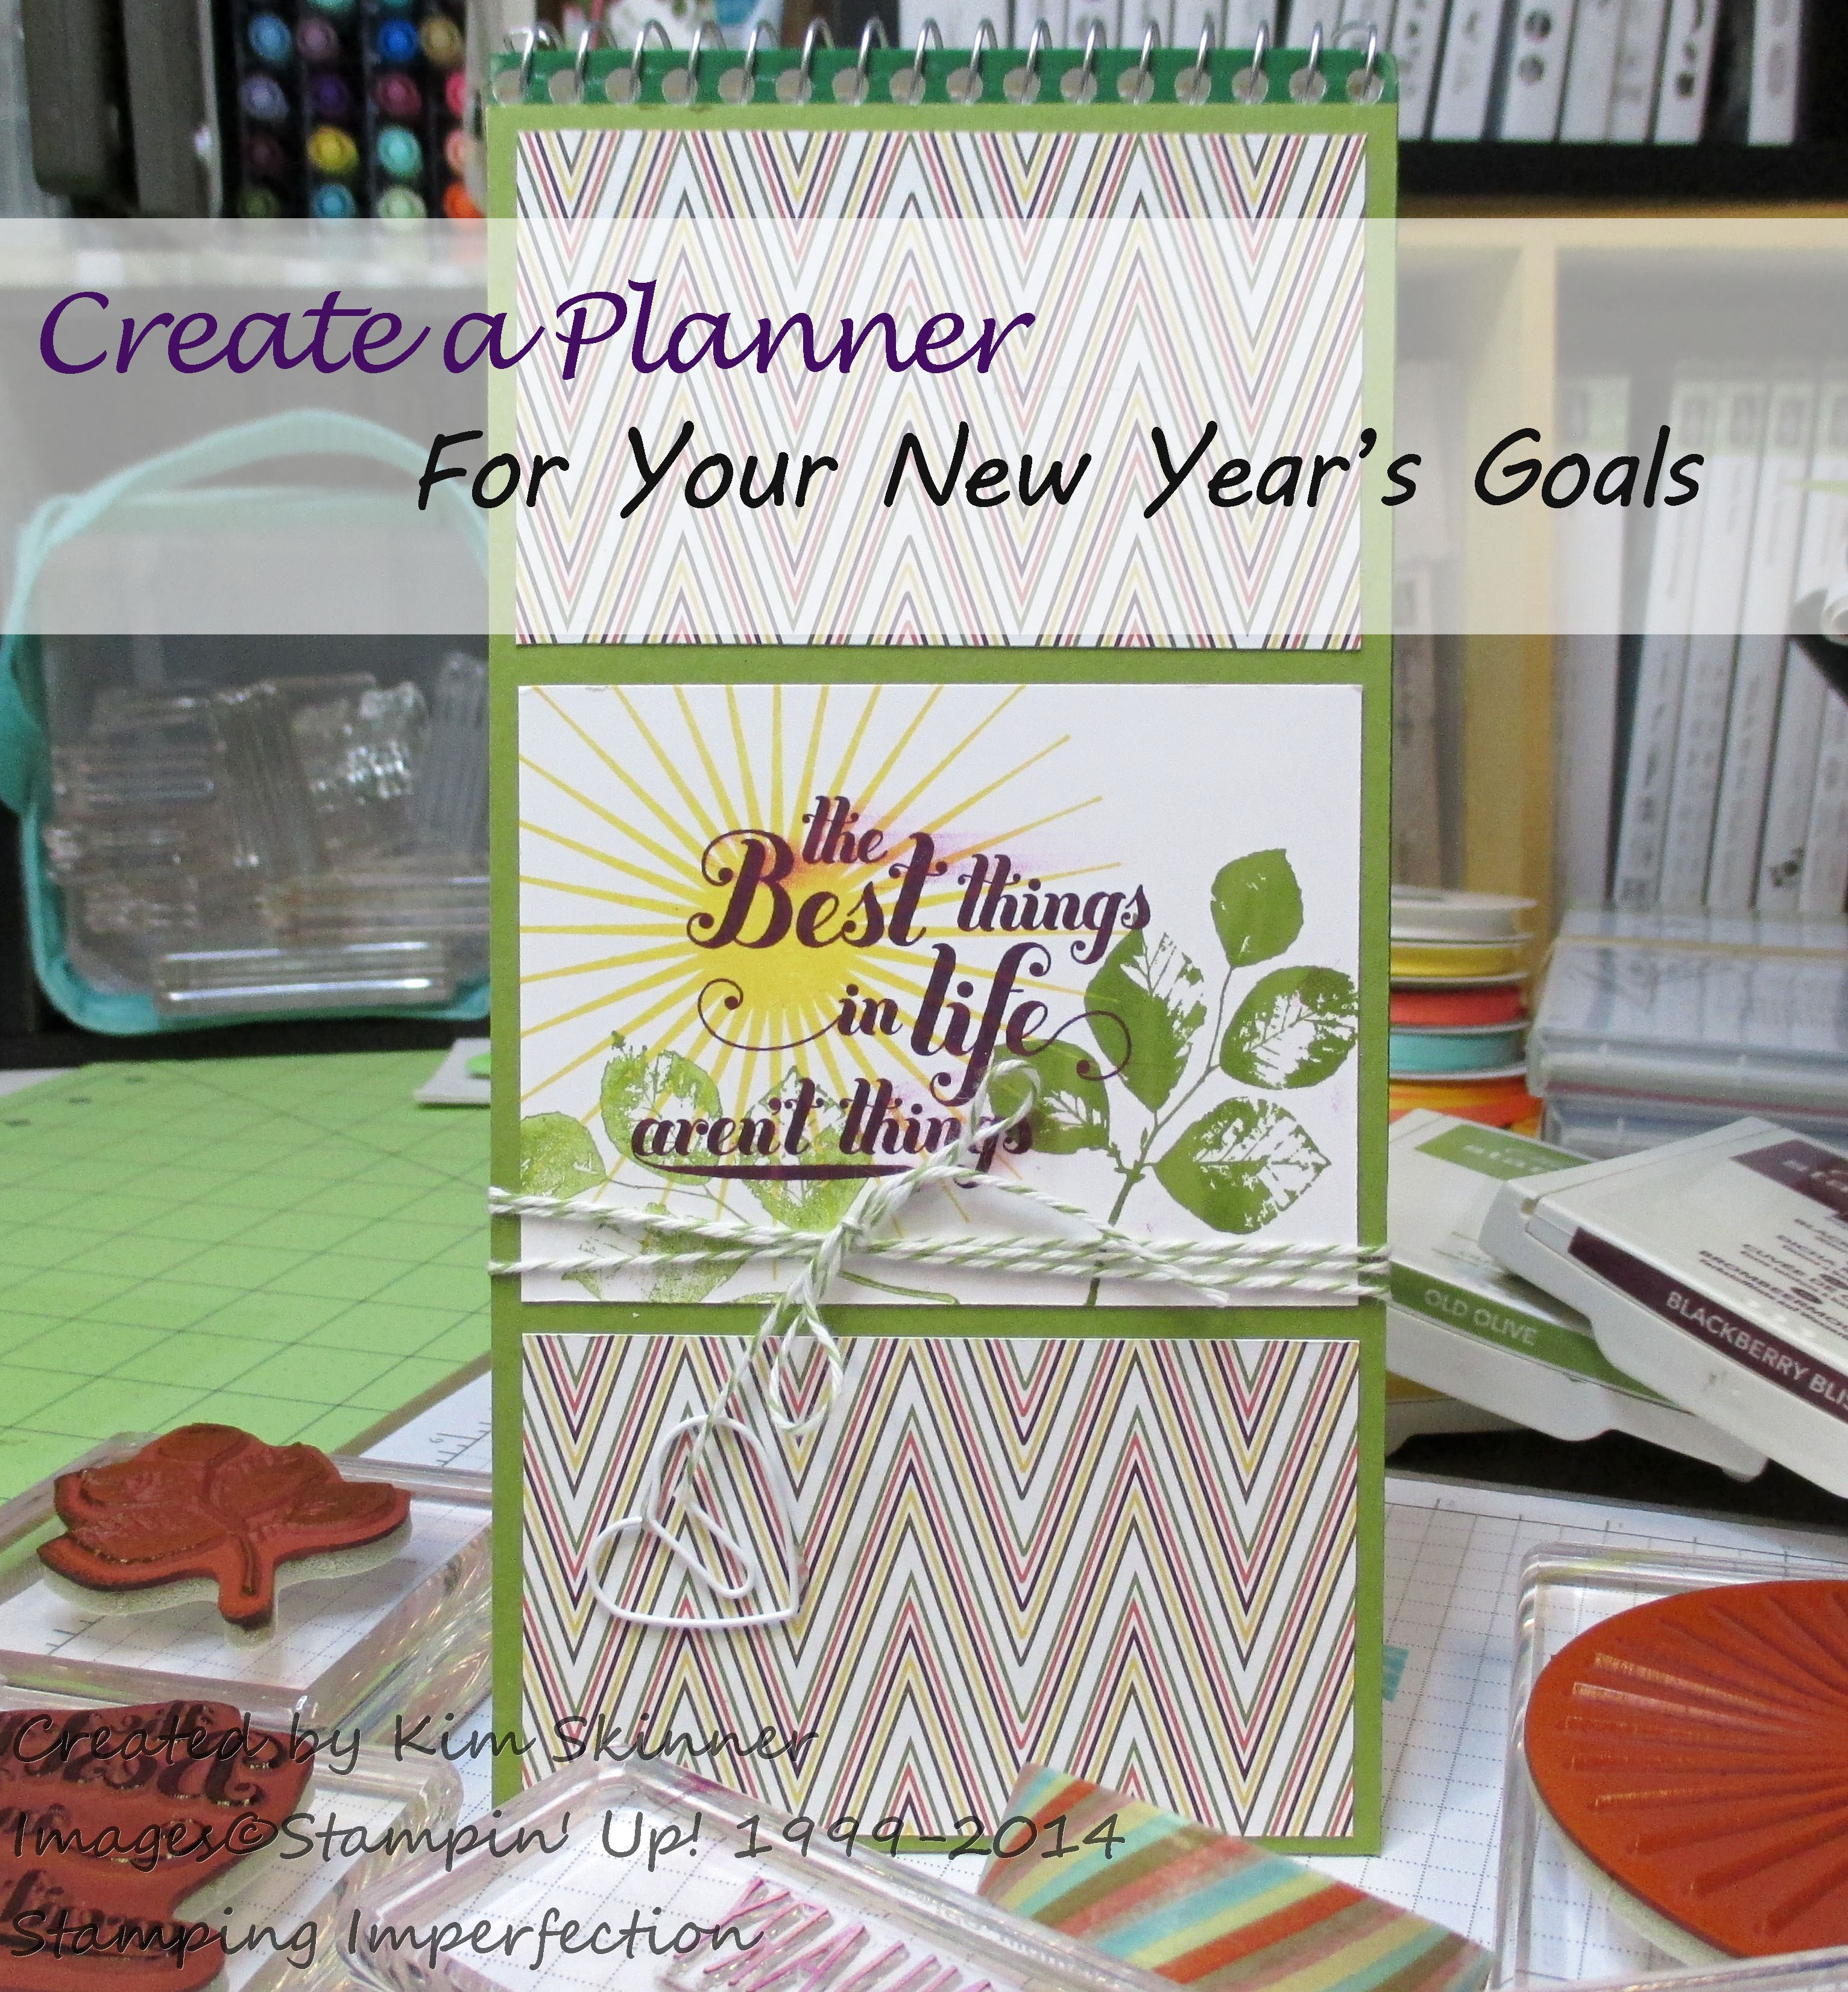 Stamping Imperfection Create a quick and easy planner for your new year's goals